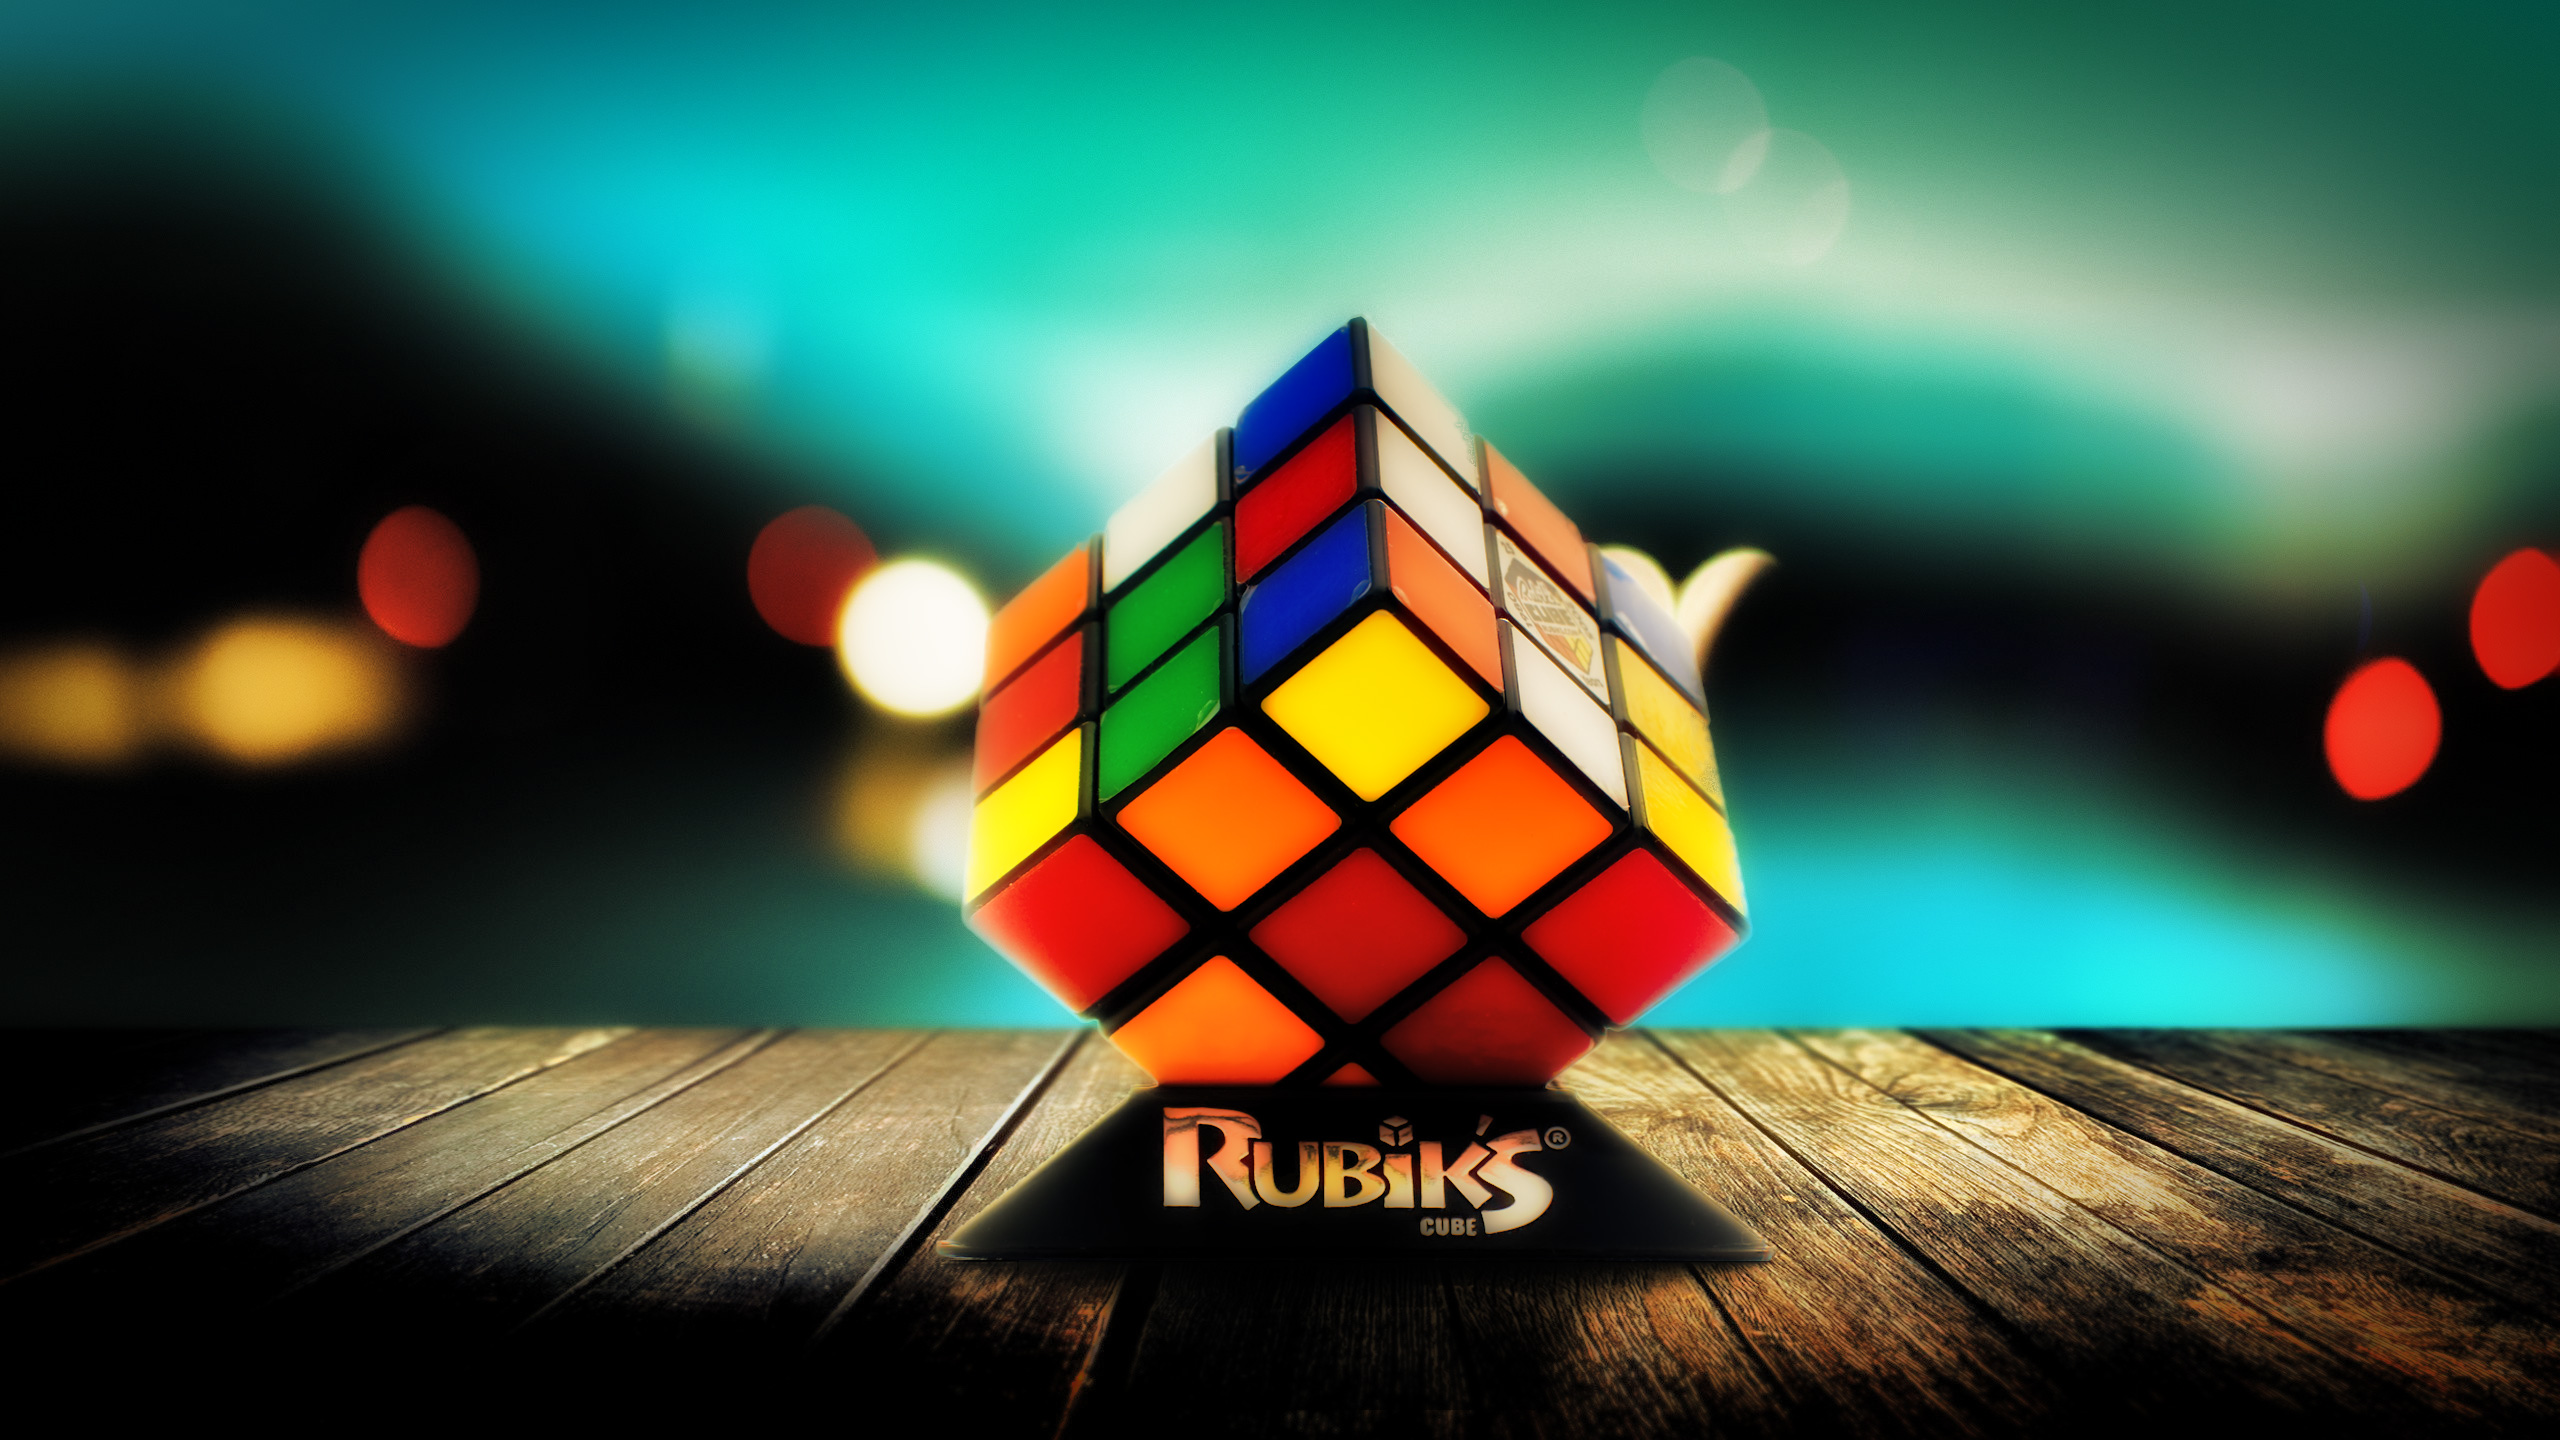 26087_1_other_wallpapers_rubiks_cube